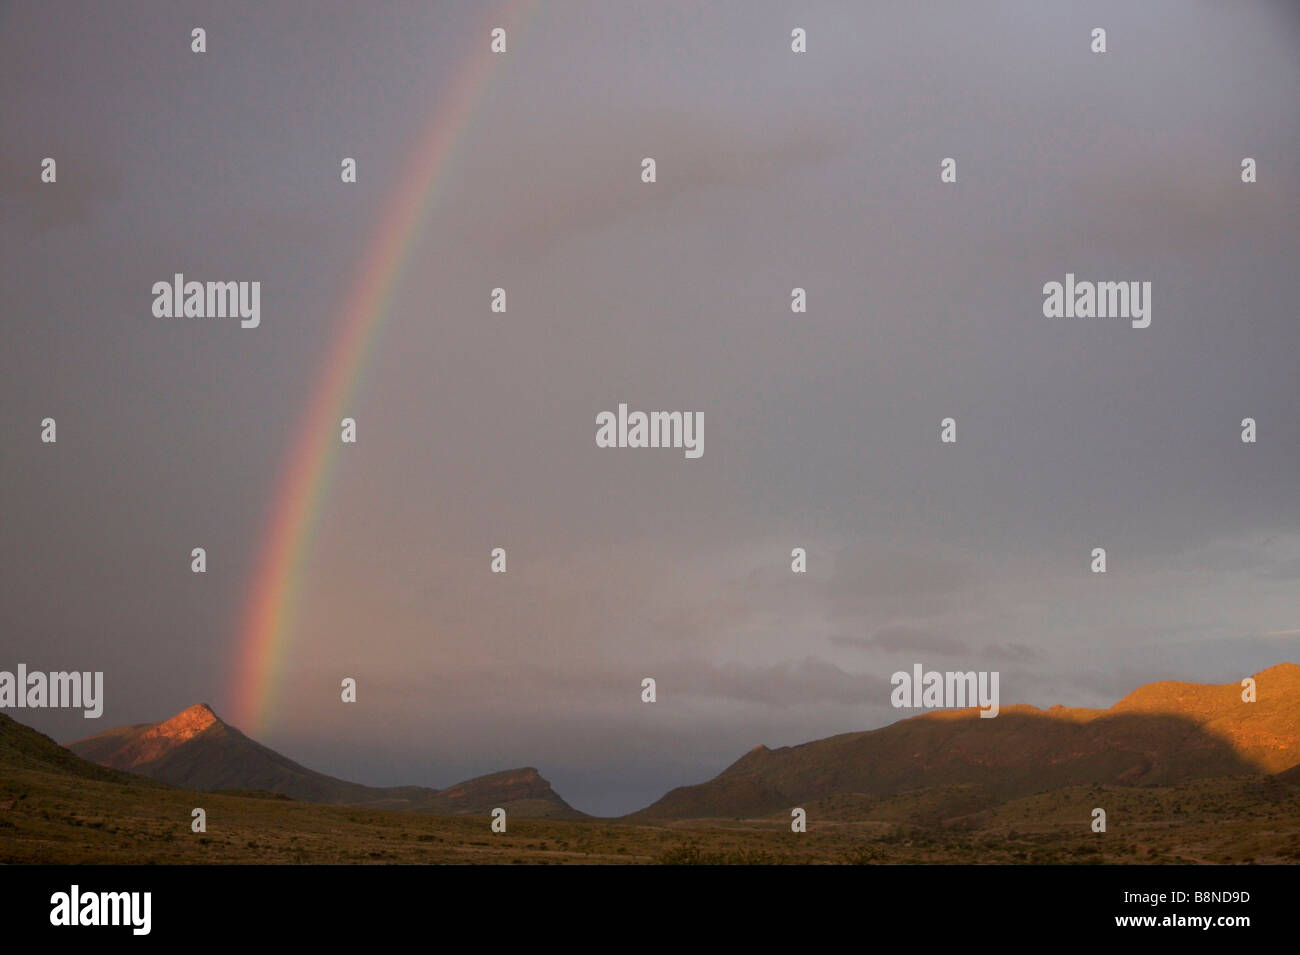 Rainbow in the Namibian countryside - Stock Image